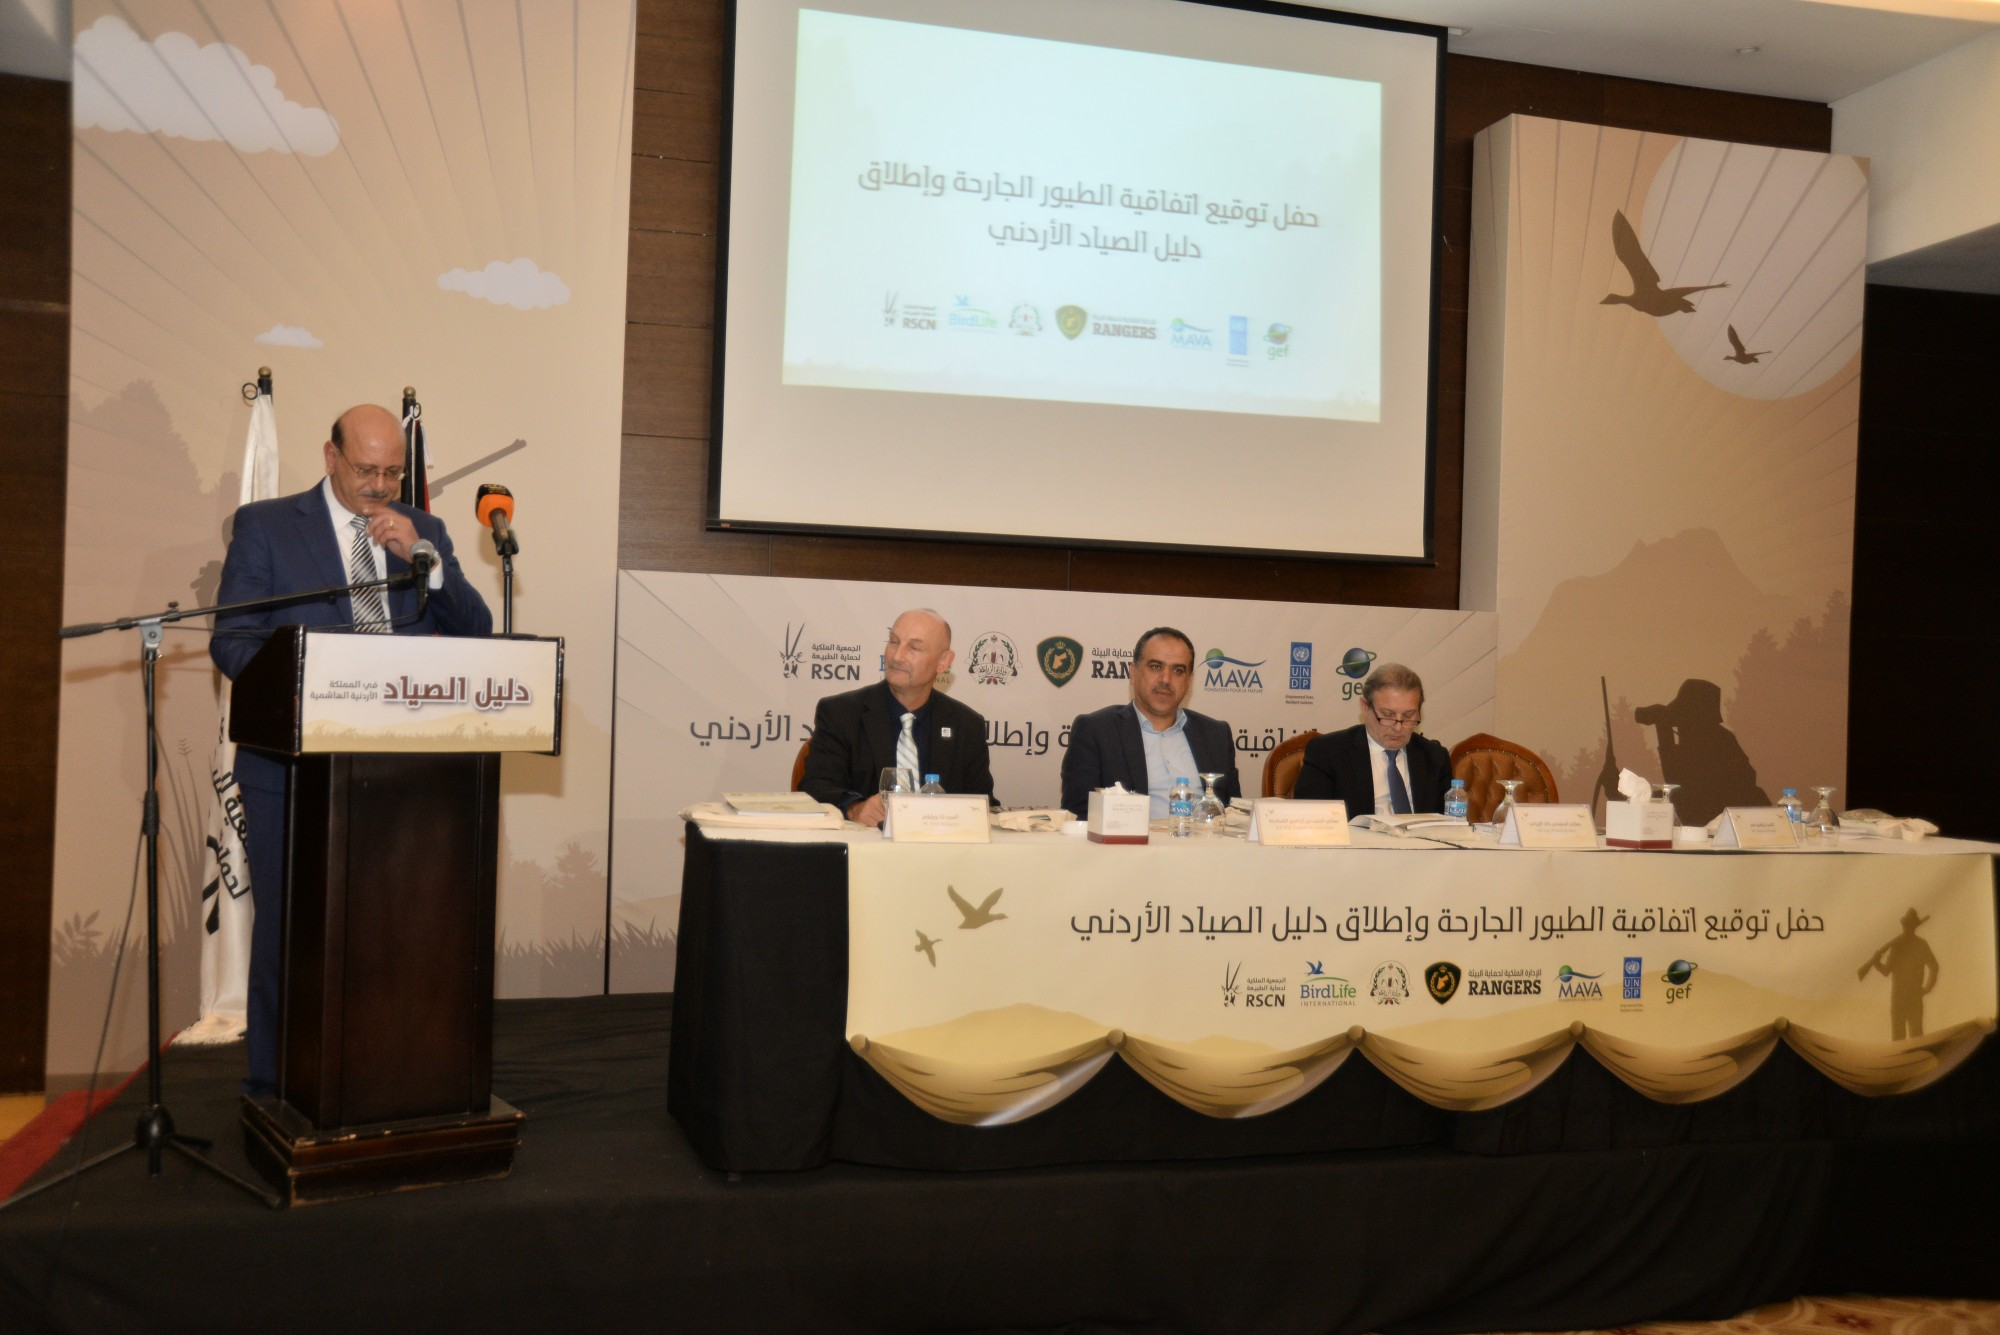 Mr. Ibrahim Khader from BirdLife International during his welcome speech